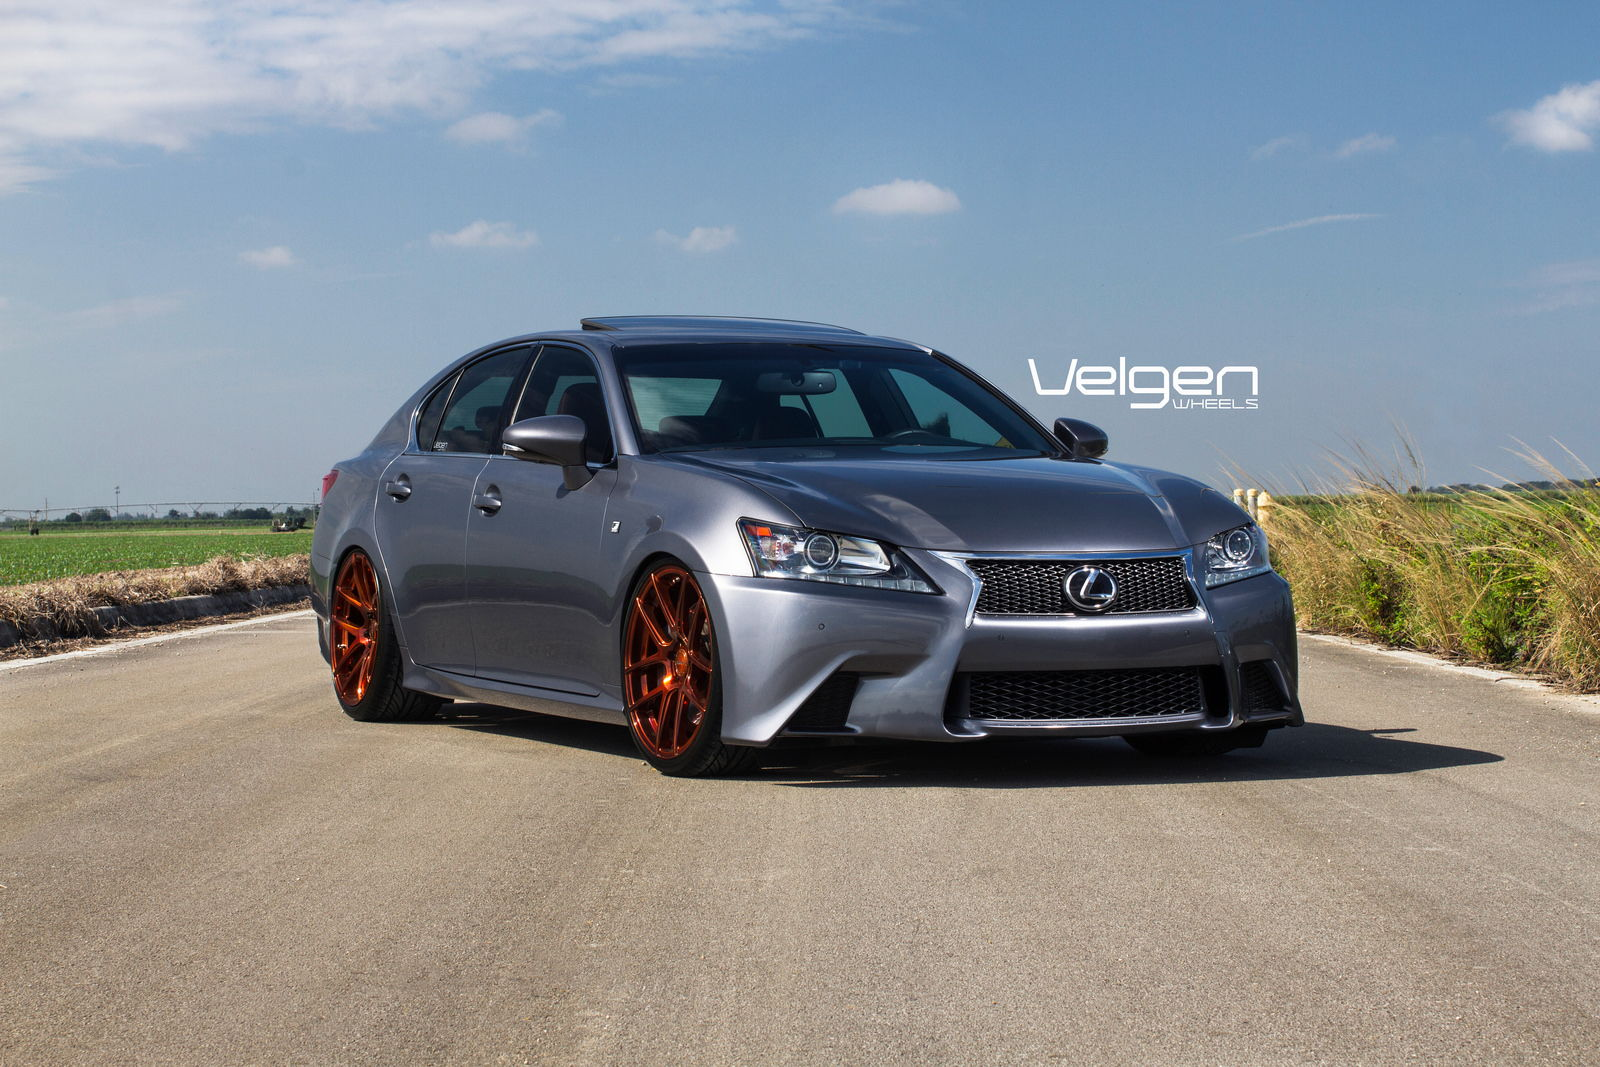 Lexus Of San Diego >> Final Setup on My Nebula Grey - ClubLexus - Lexus Forum Discussion